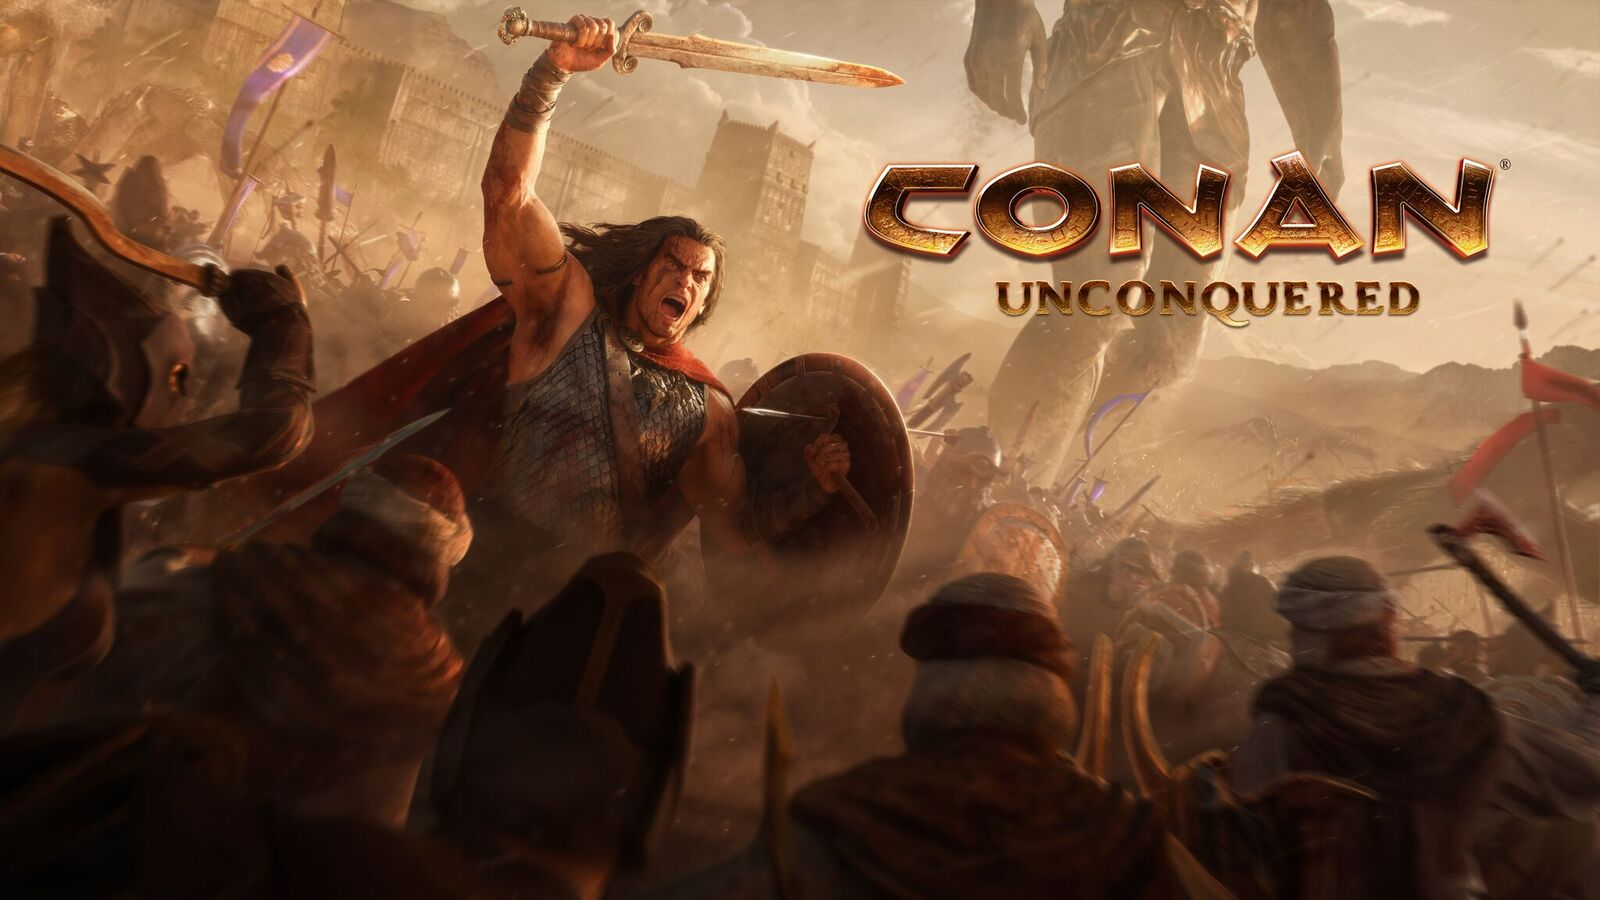 Here's our first look at Conan Unconquered, the new RTS from Command